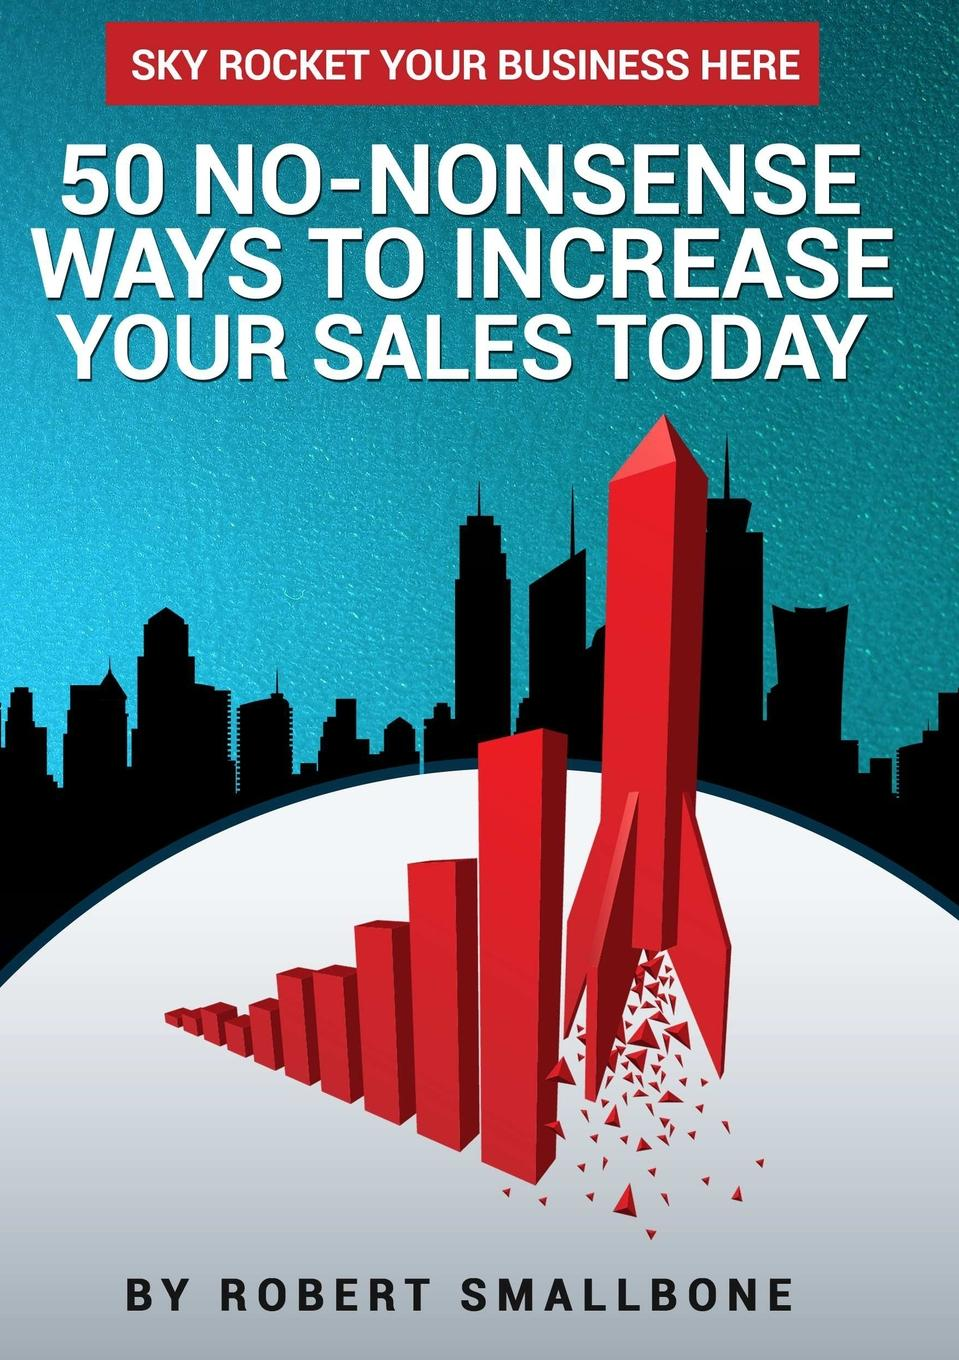 Фото - Robert Smallbone 50 No-Nonsense Ways To Increase Your Sales Today pieter k de villiers barefoot business 3 key systems to attract more leads win more sales and delight more customers without your business killing you